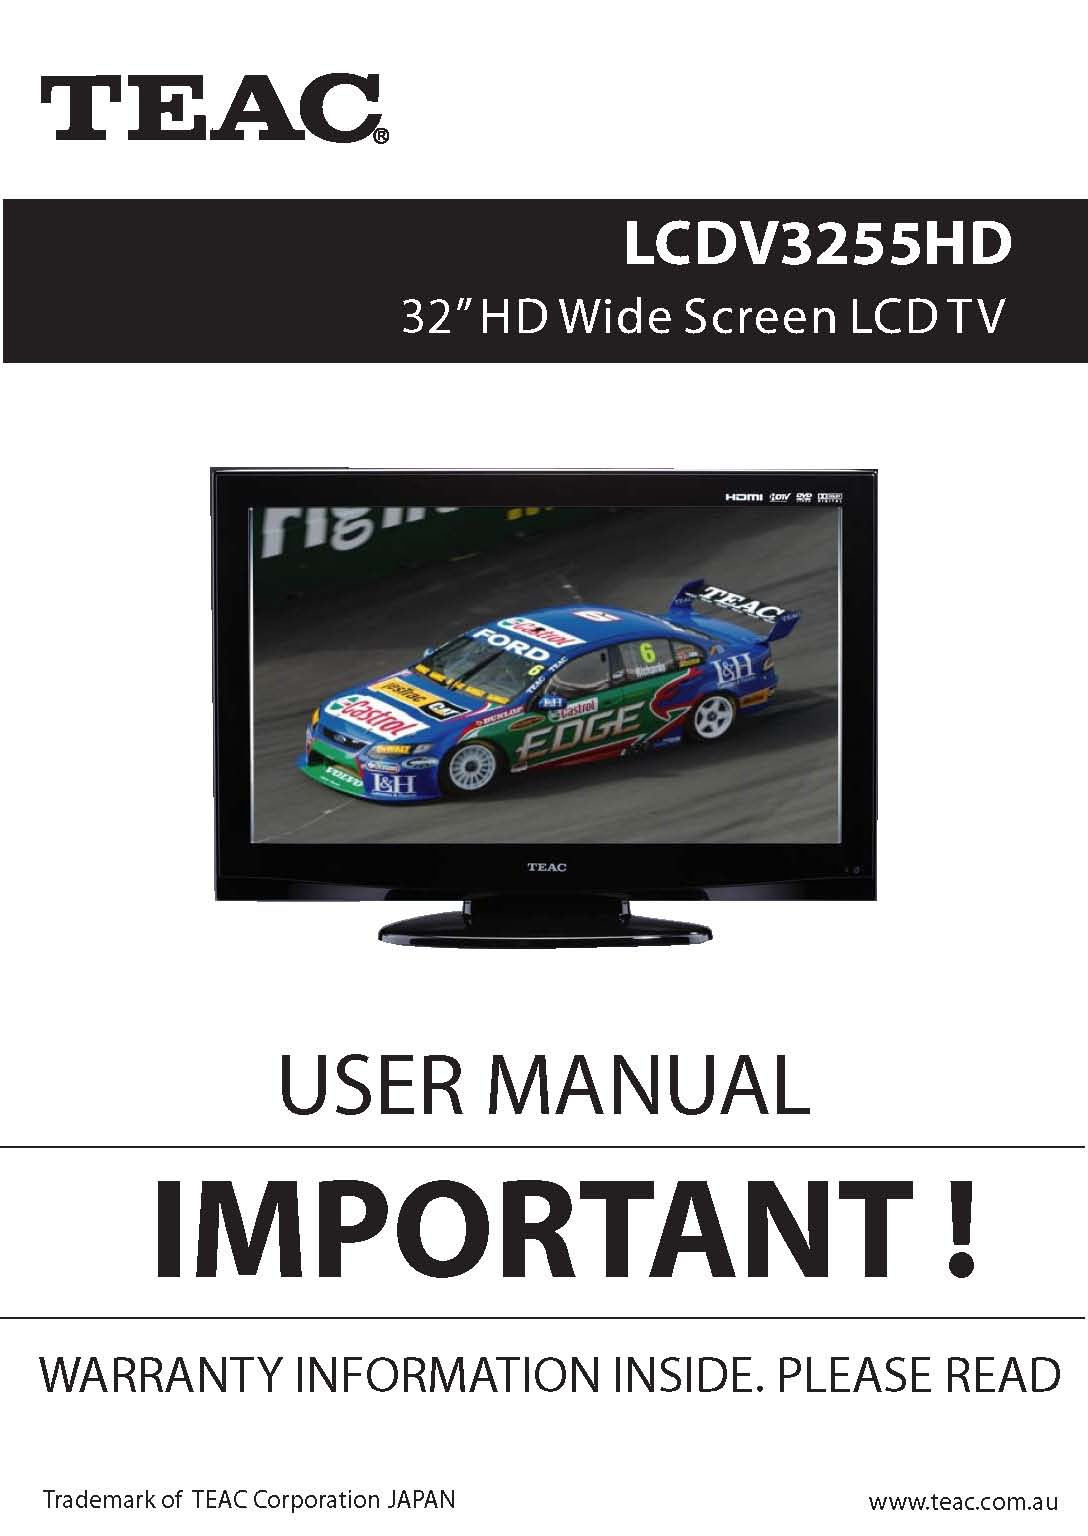 TEAC LCDV3255HD User Manual